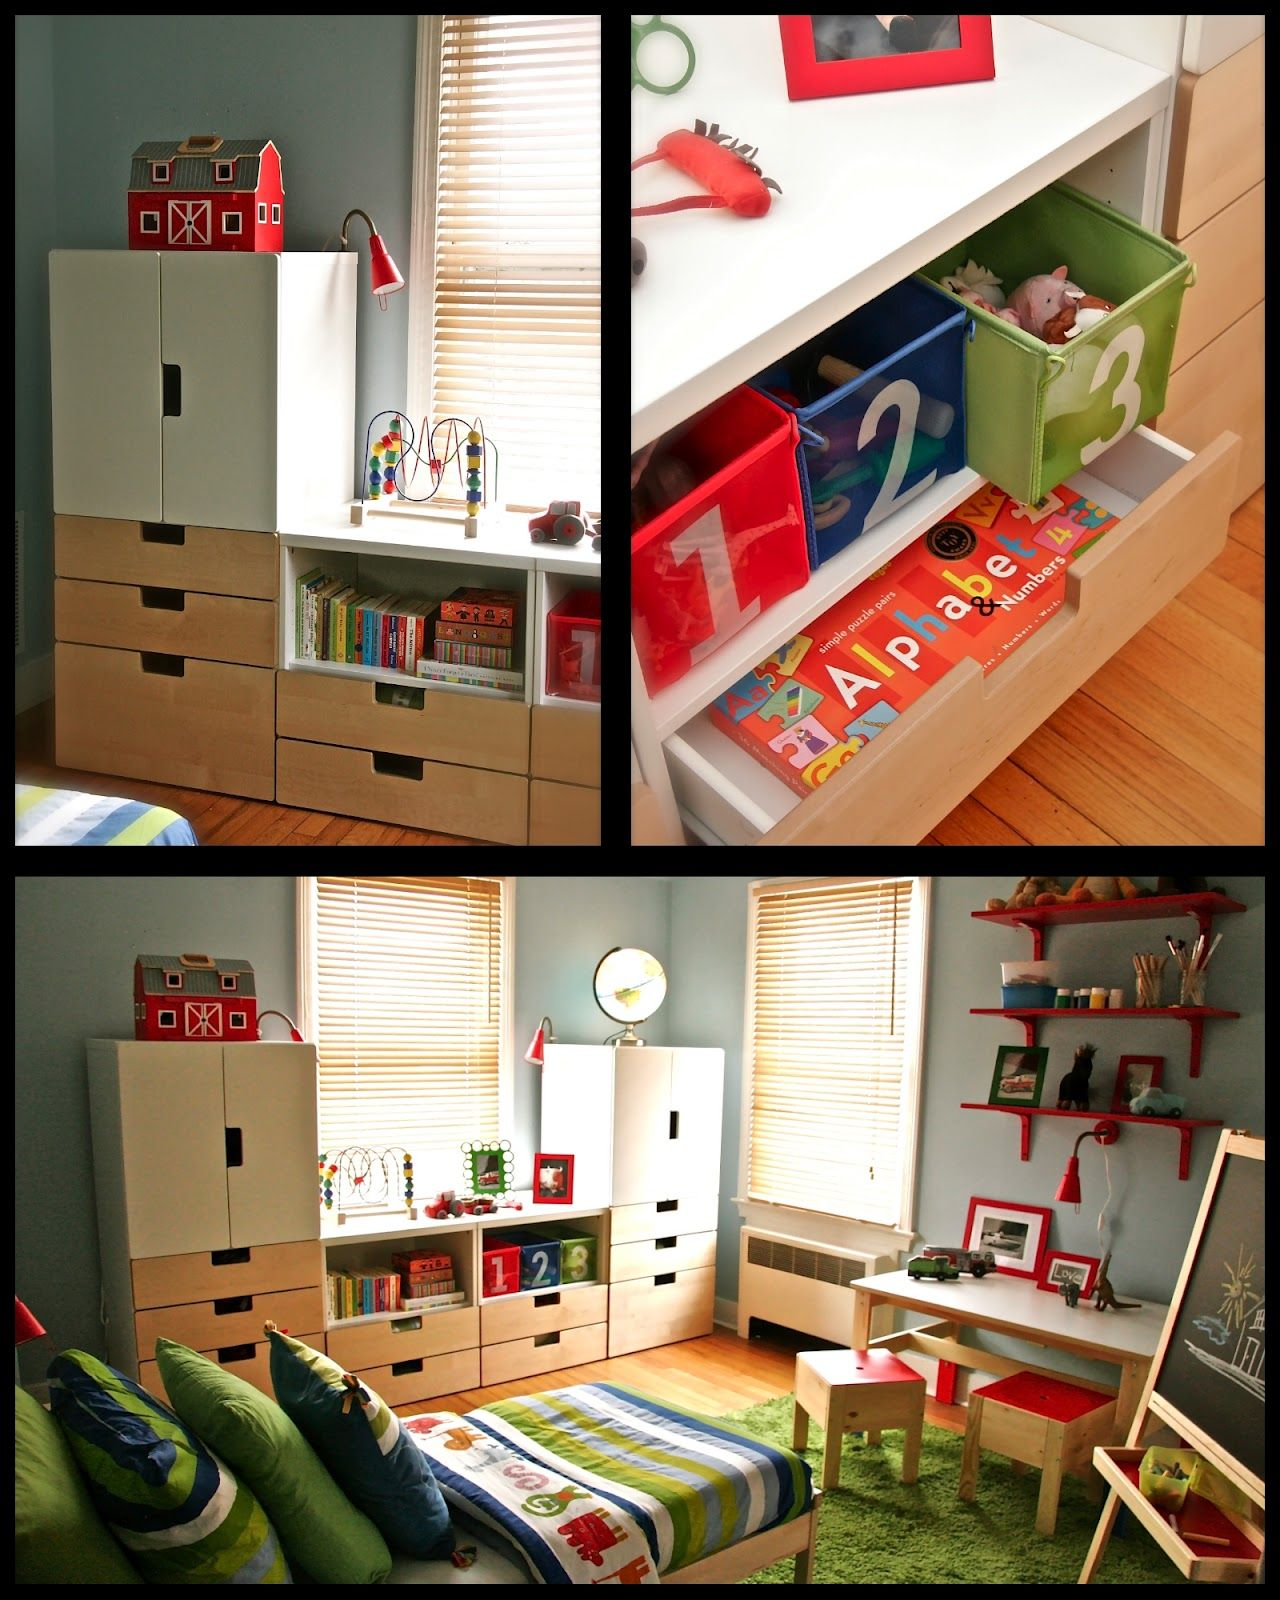 ikea stuva on pinterest build in wardrobe ikea hacks and expeditio. Black Bedroom Furniture Sets. Home Design Ideas